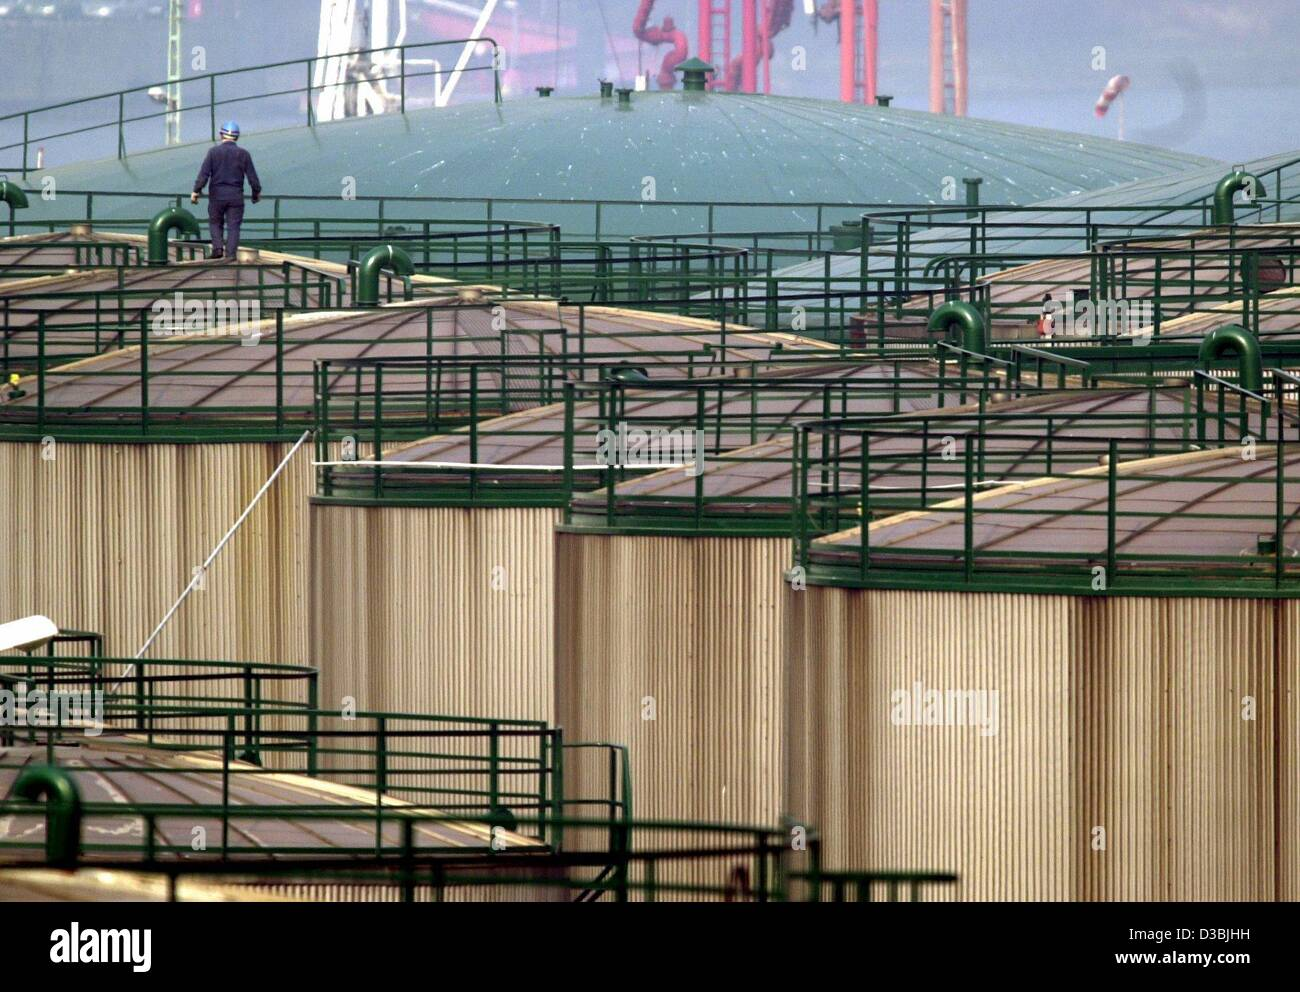 (dpa) - A worker walks across a giant tank filled with petrol and crude oil on the premises of the oil tank depot - Stock Image